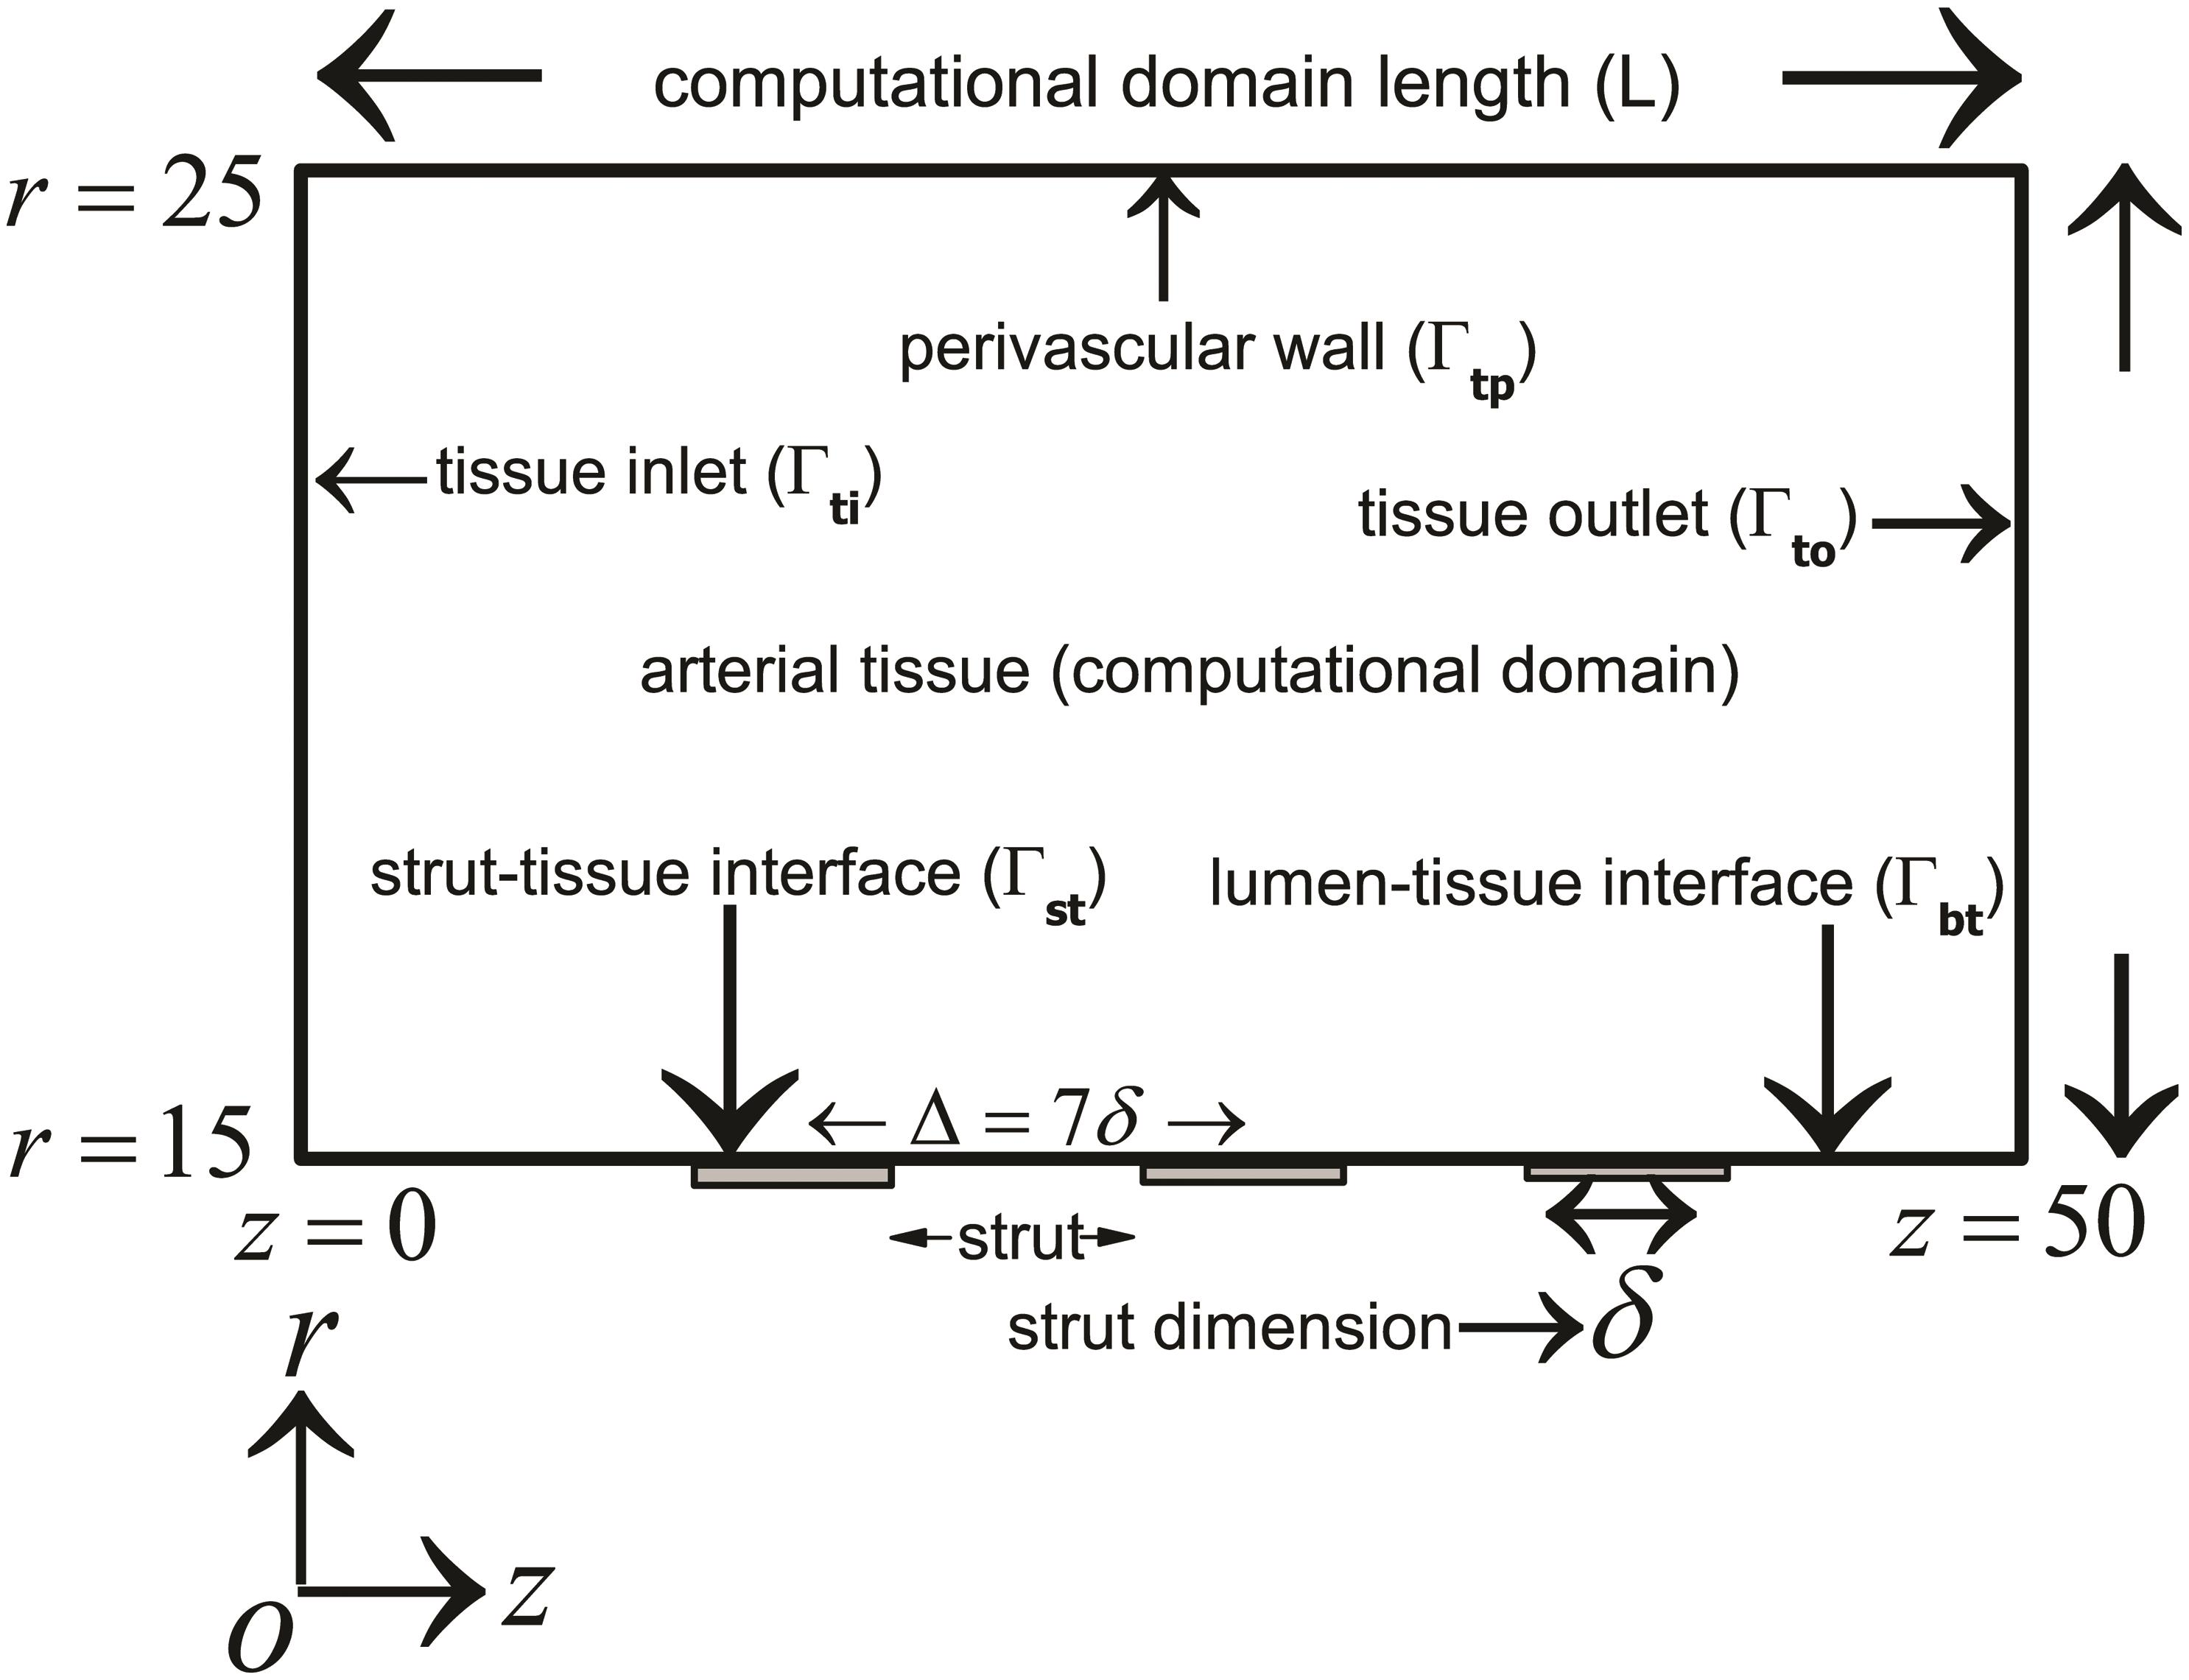 Schematic of the computational model used for the study.